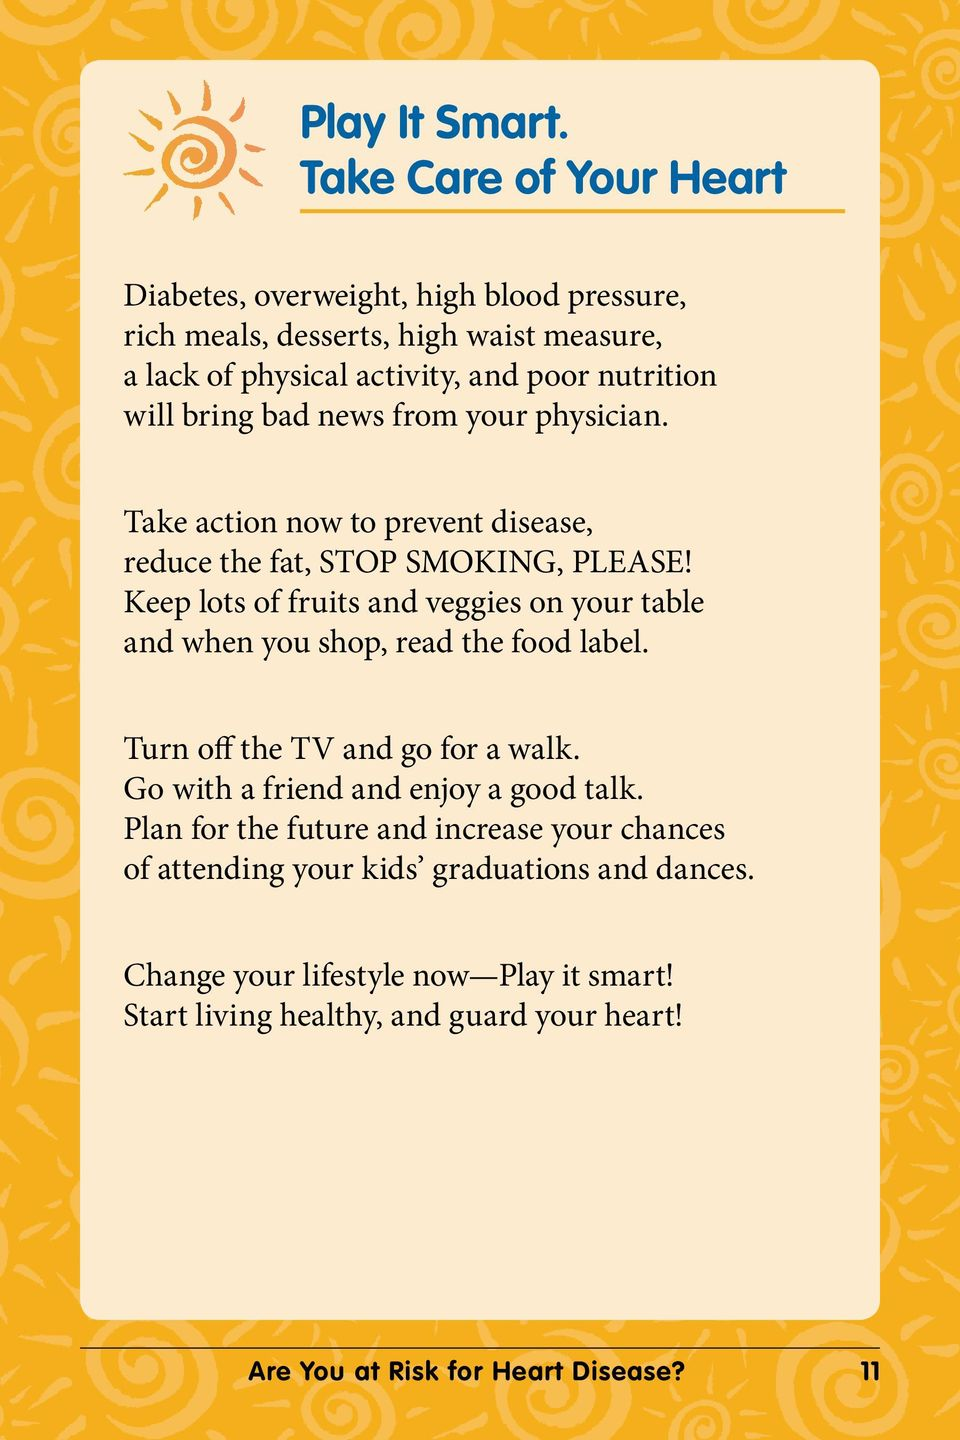 bring bad news from your physician. Take action now to prevent disease, reduce the fat, STOP SMOKING, PLEASE!